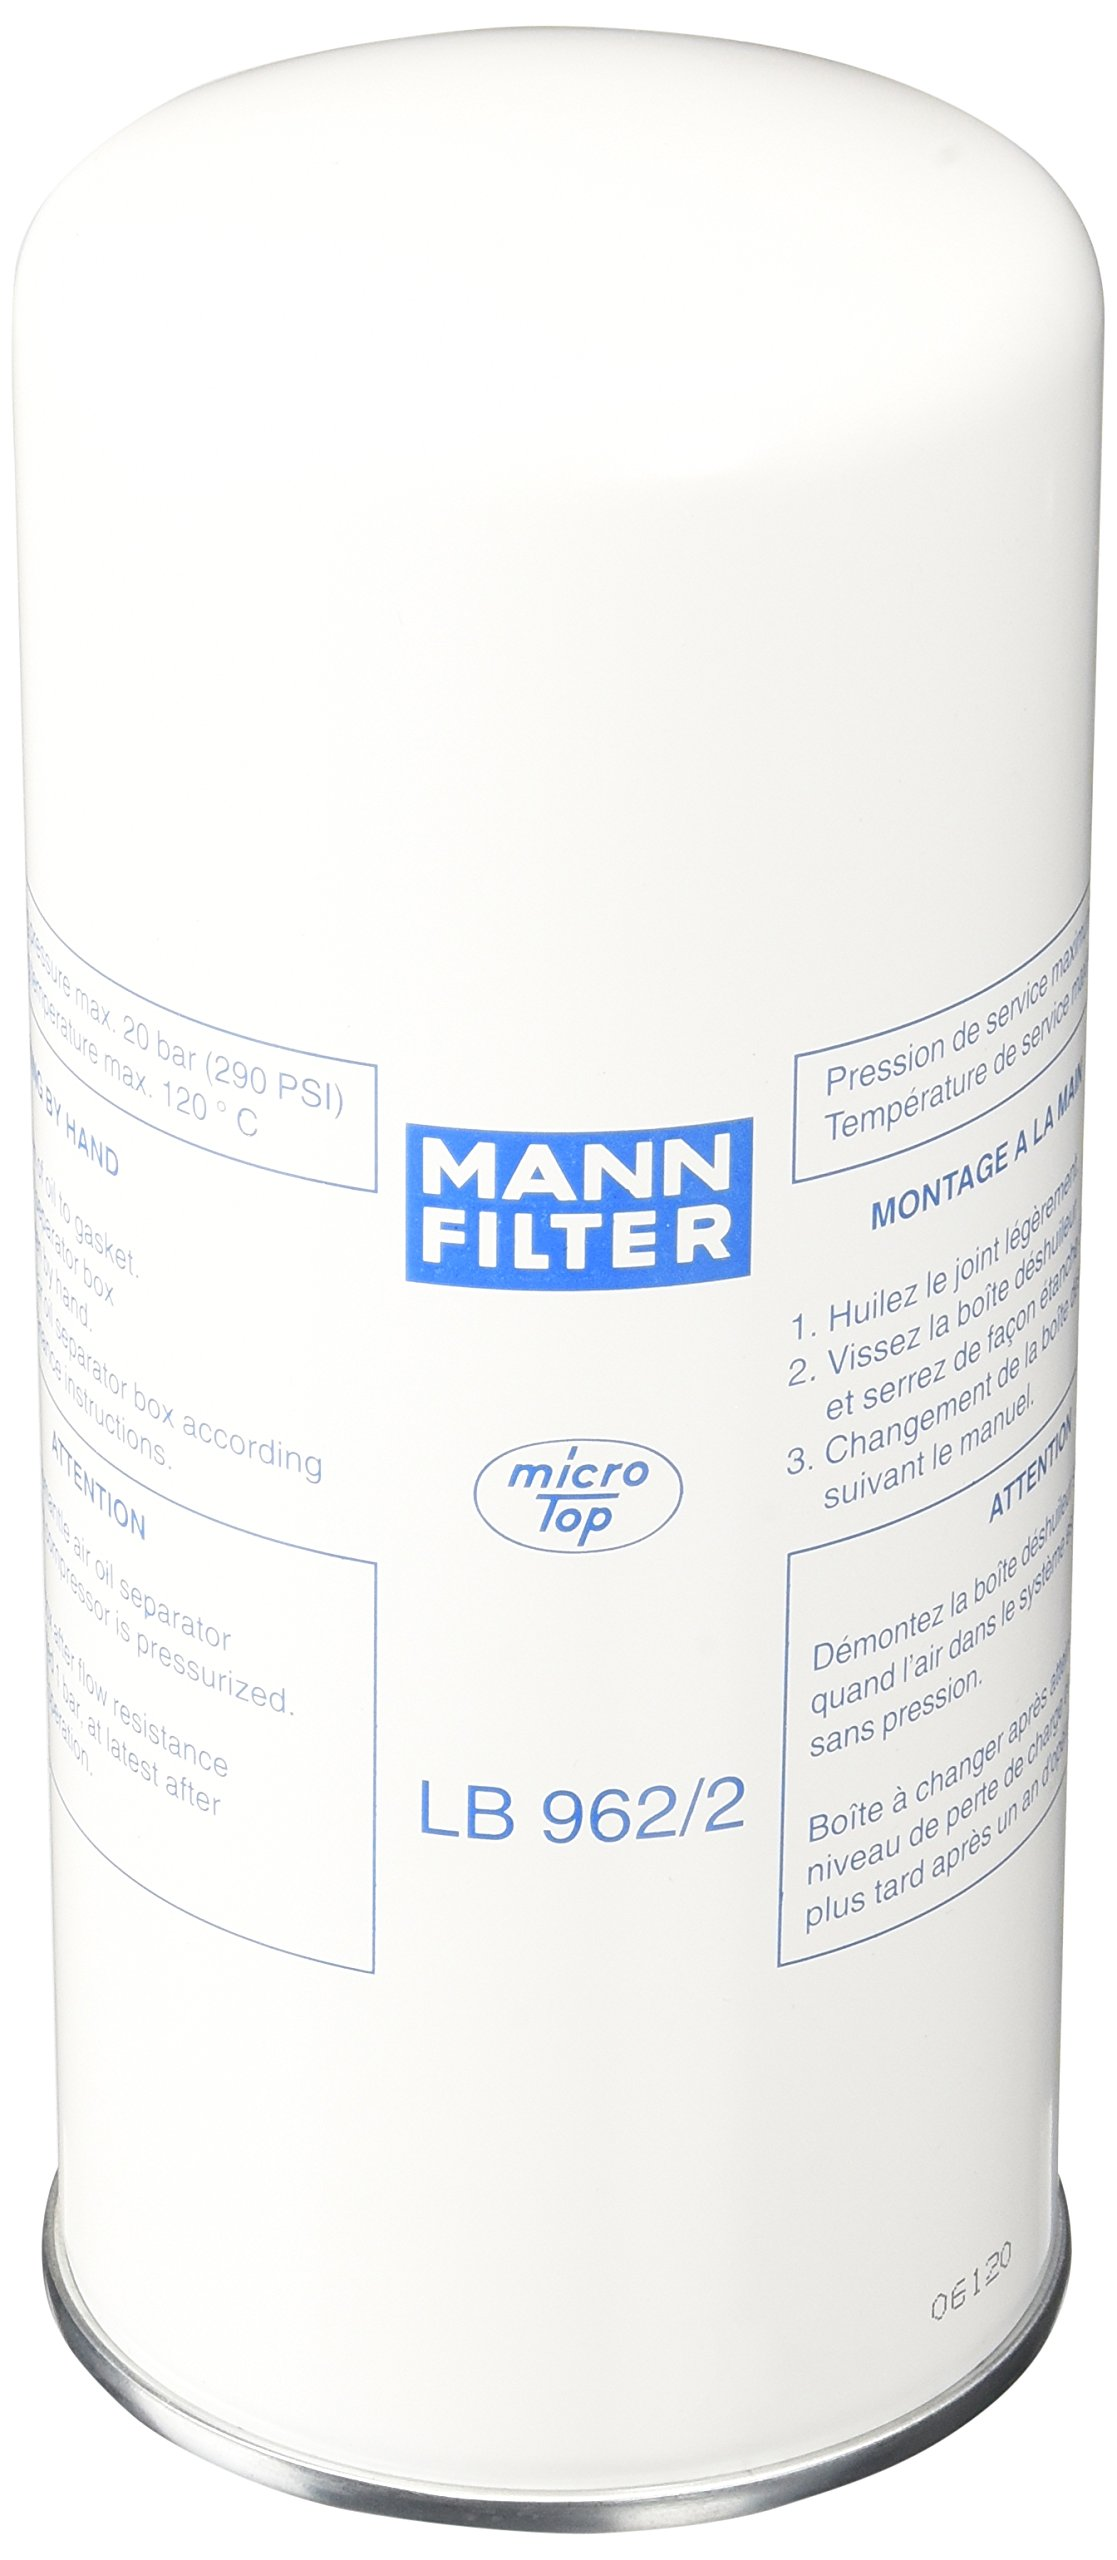 Killer Filter Replacement for Atlas Copco 1622-0871-00 by Killer Filter